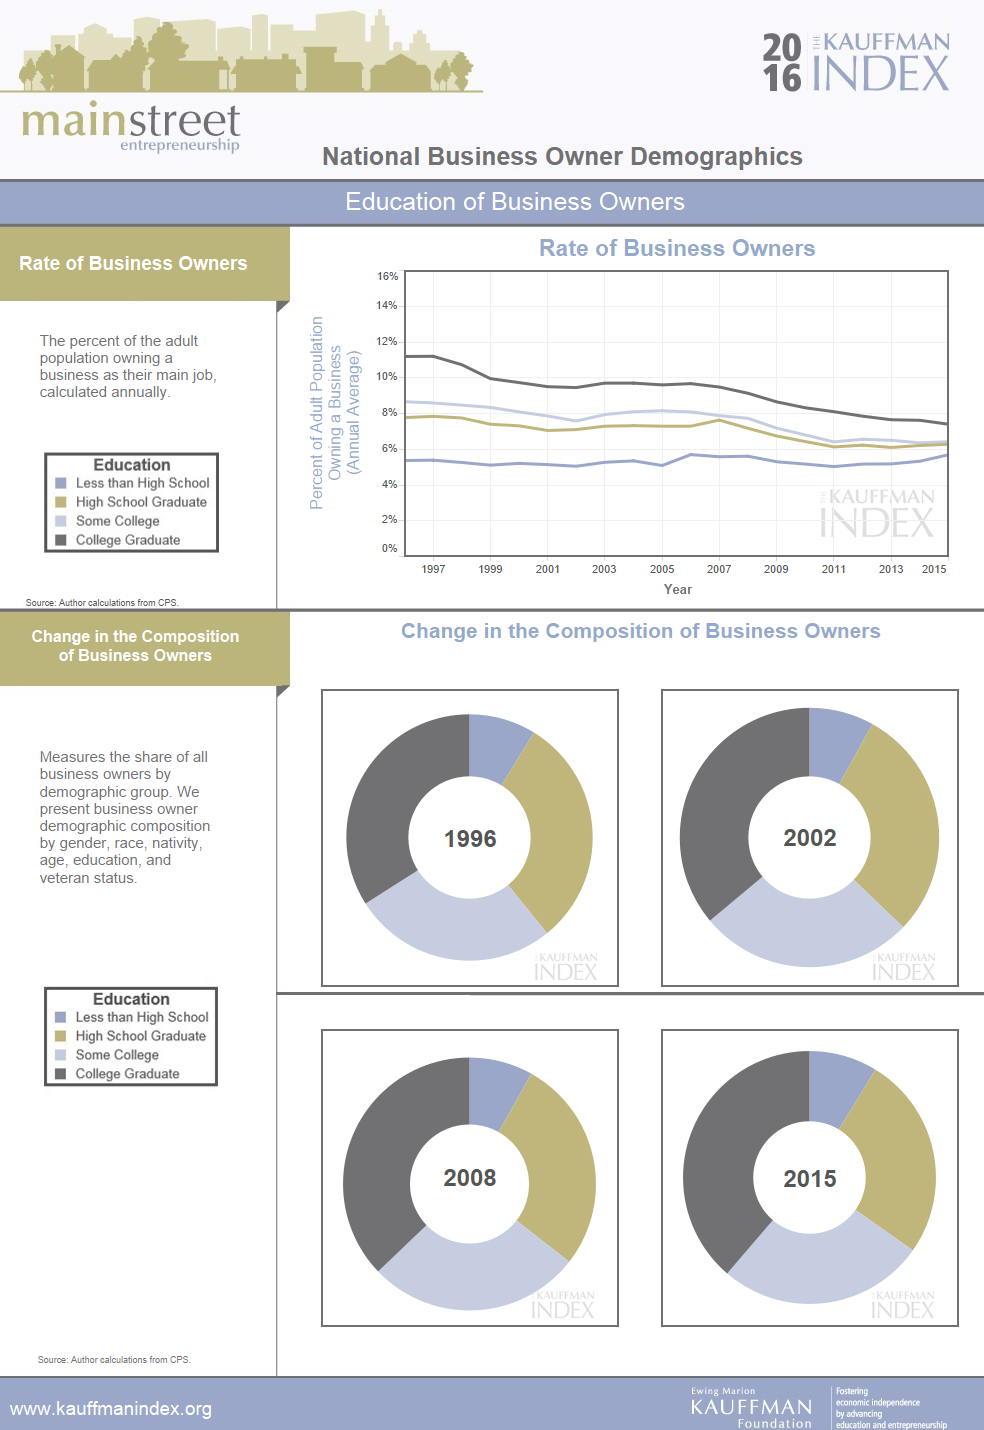 Kauffman Index - 2016 - Main Street - Entrepreneurial Demographics Profiles (3).png